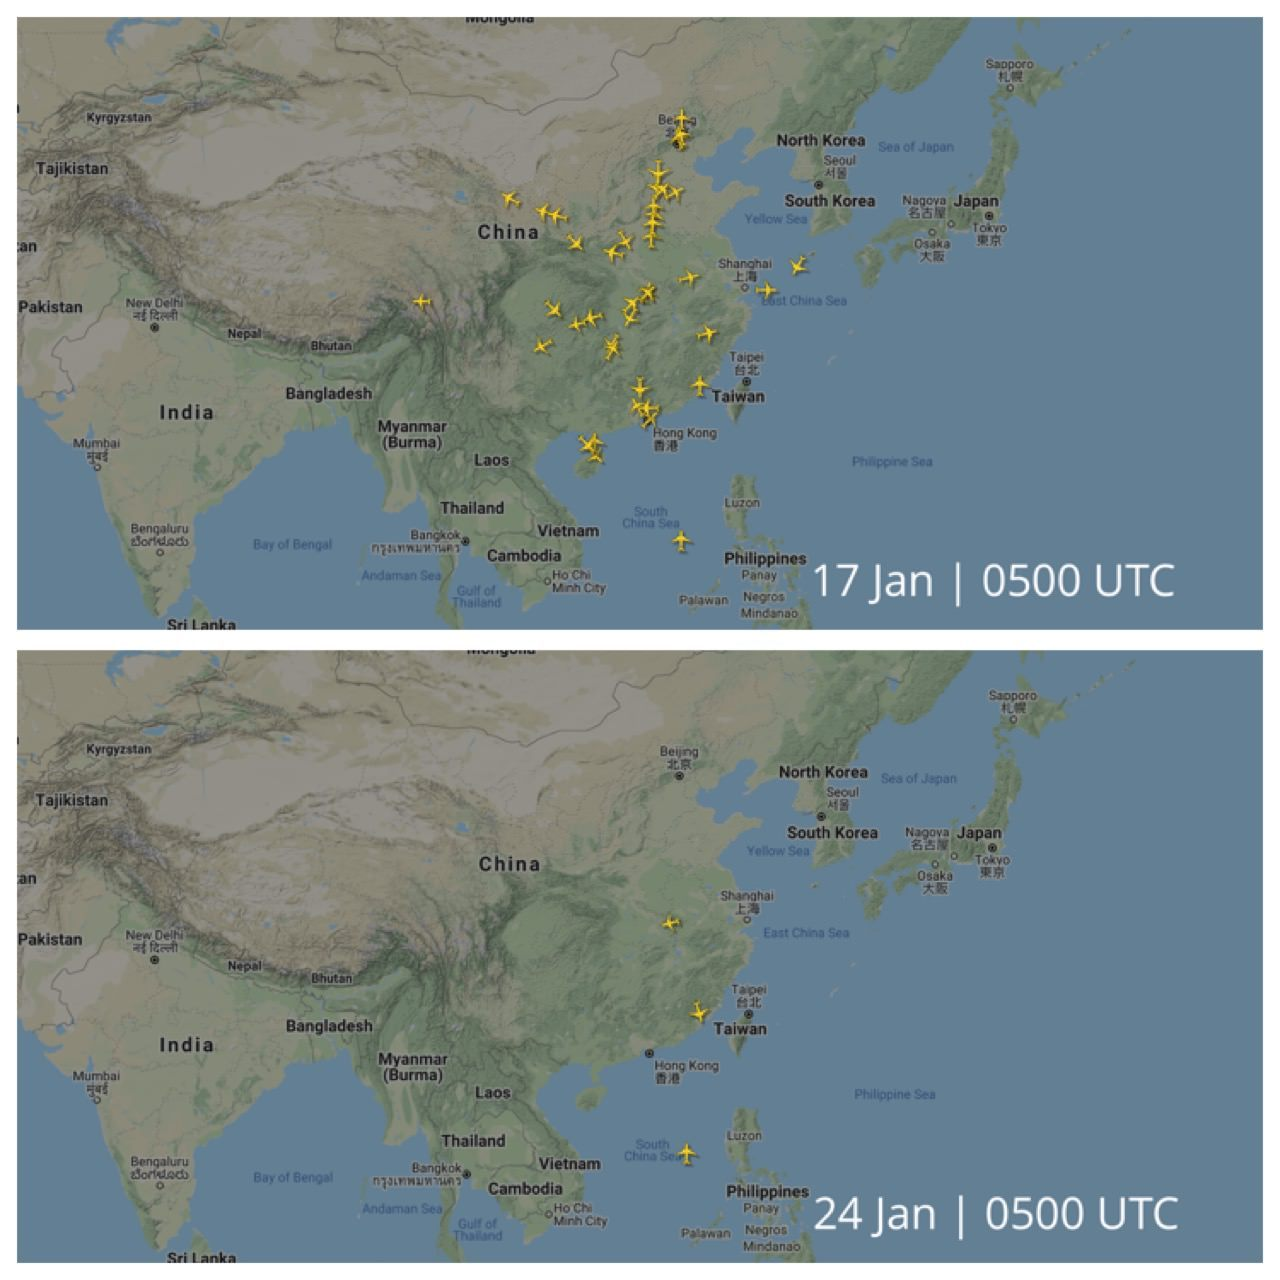 Flights to and from Wuhan 17 vs 24 January